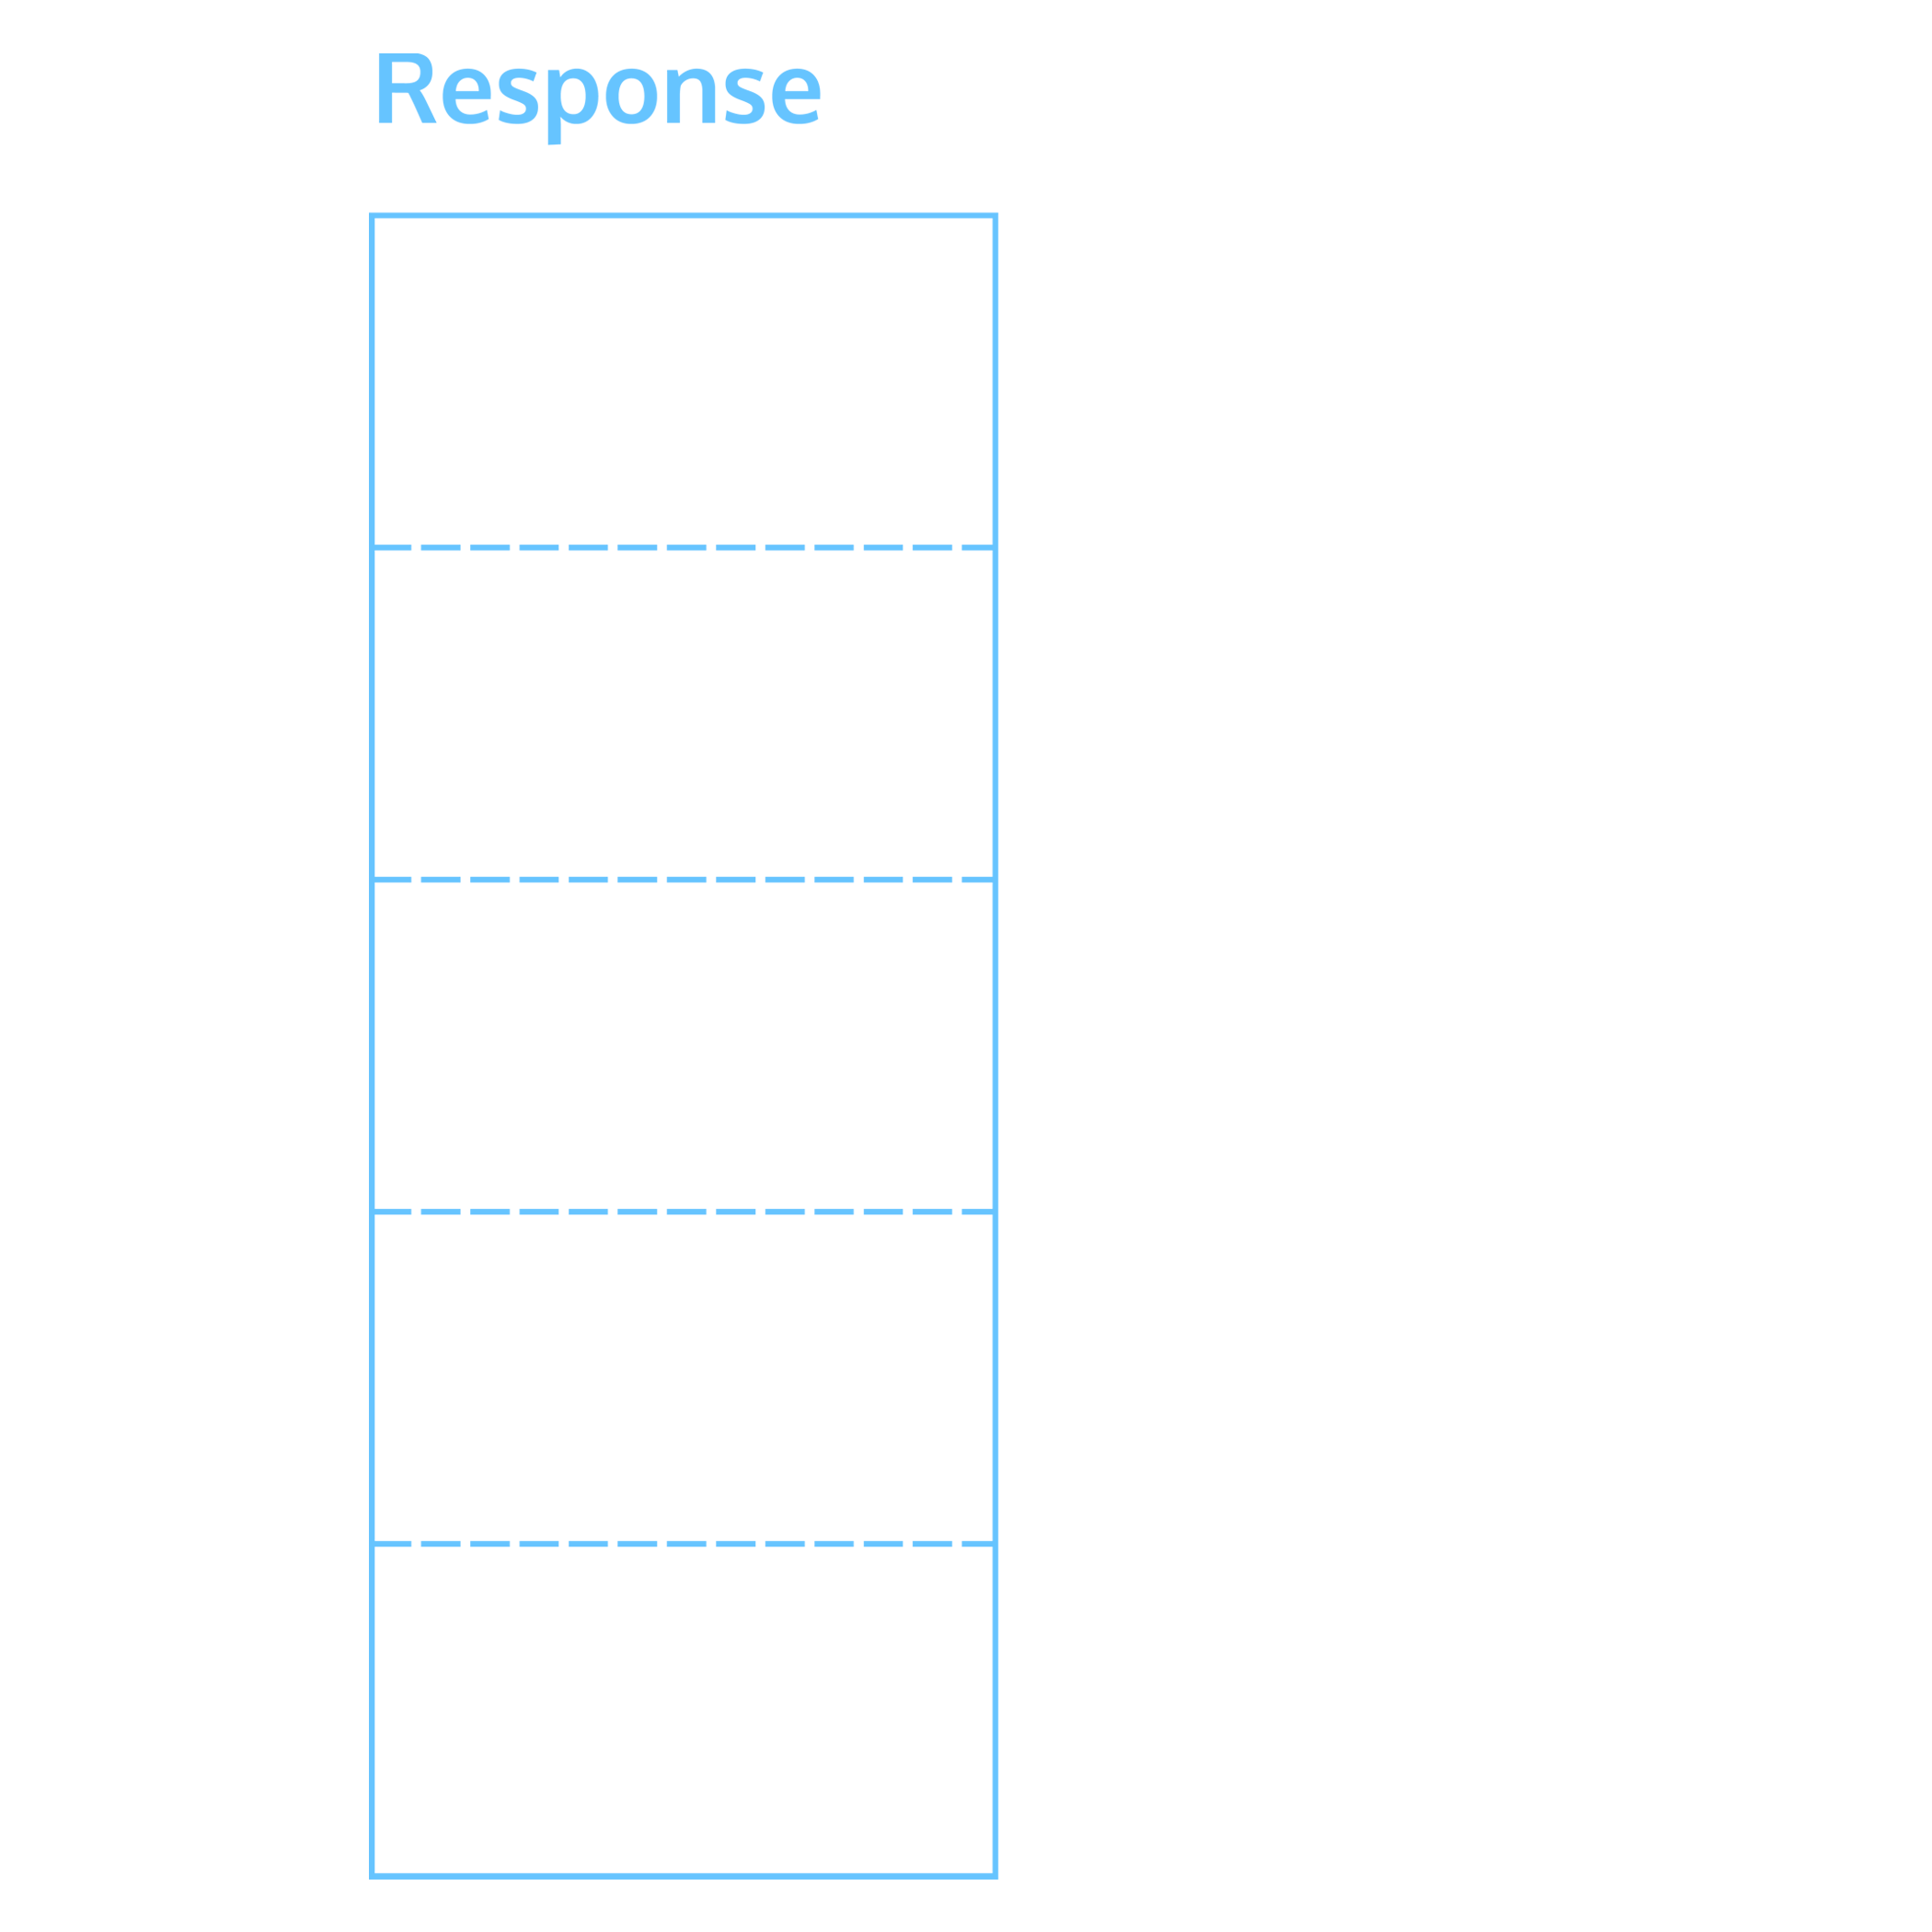 Diagram showing contents of an HTTP response.